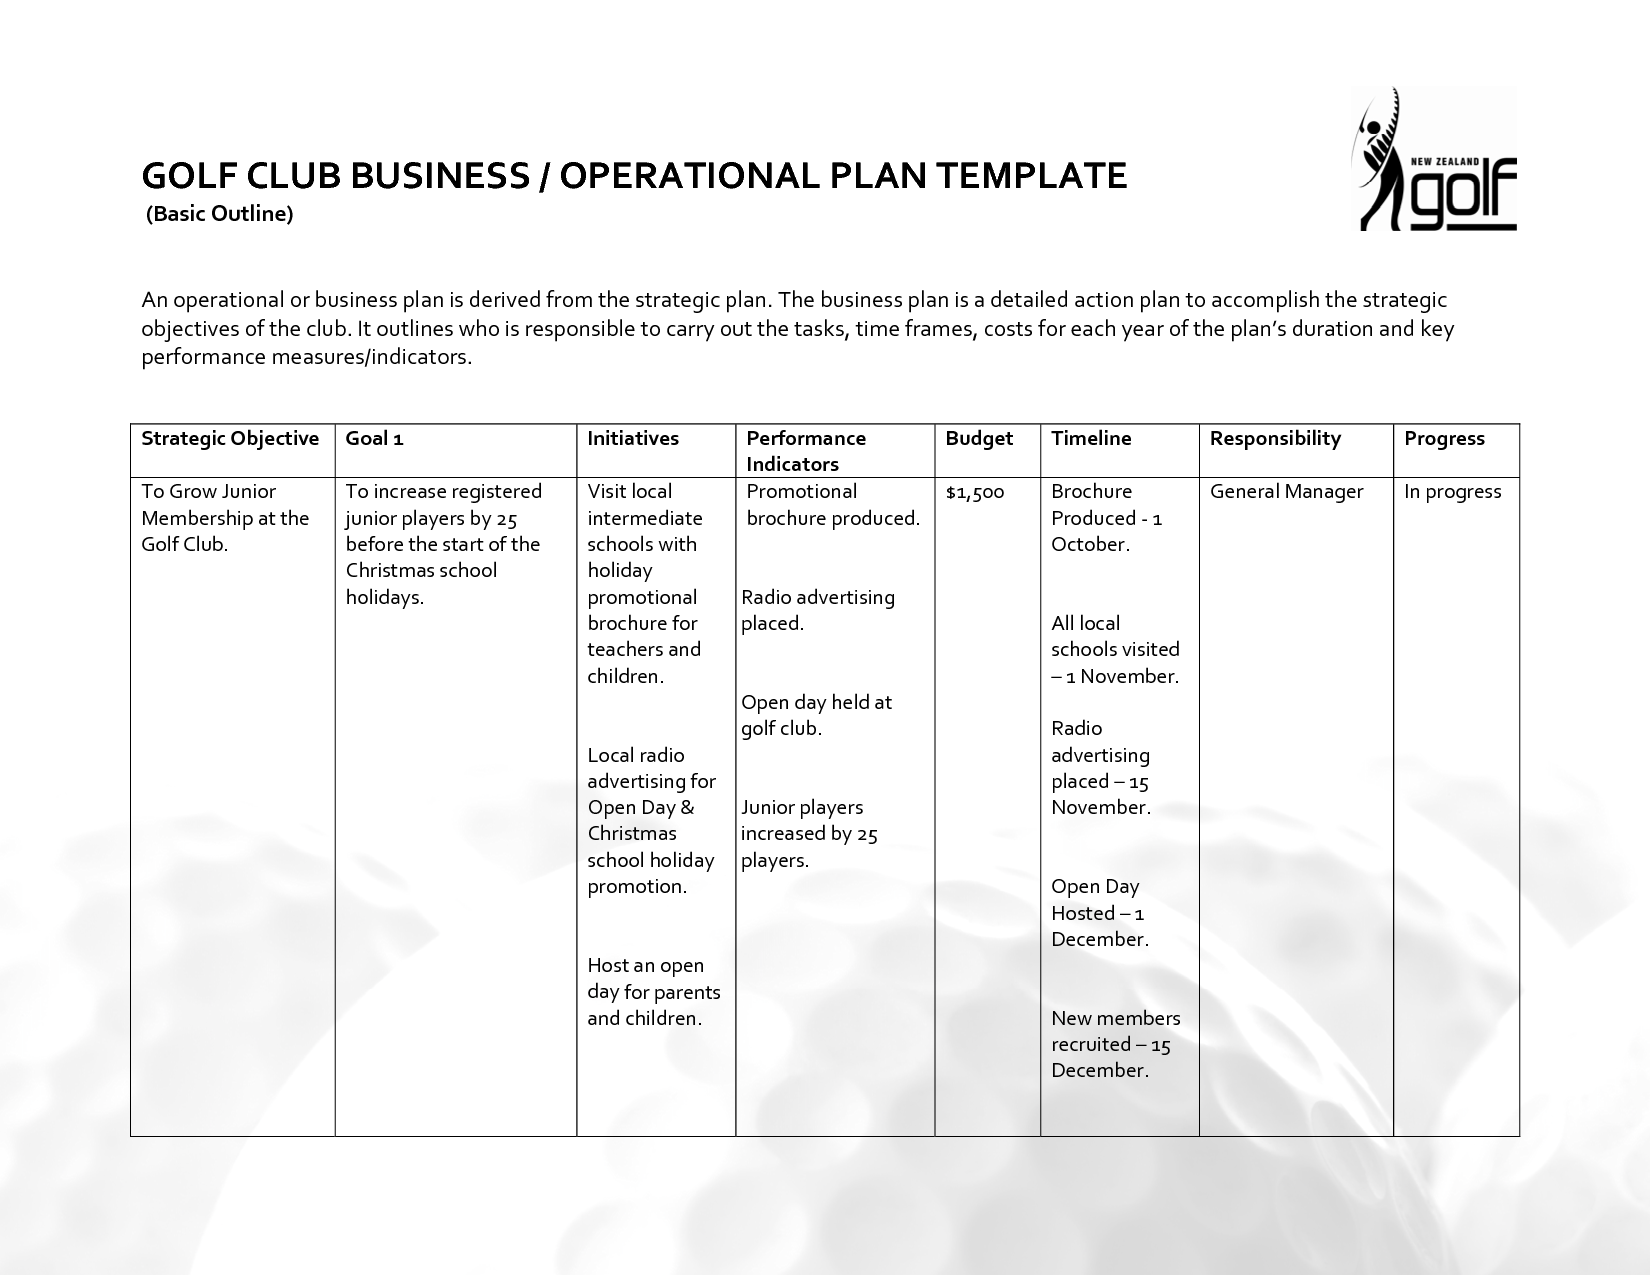 Basic Business Plan Outline Sample Golf Club Business Operational